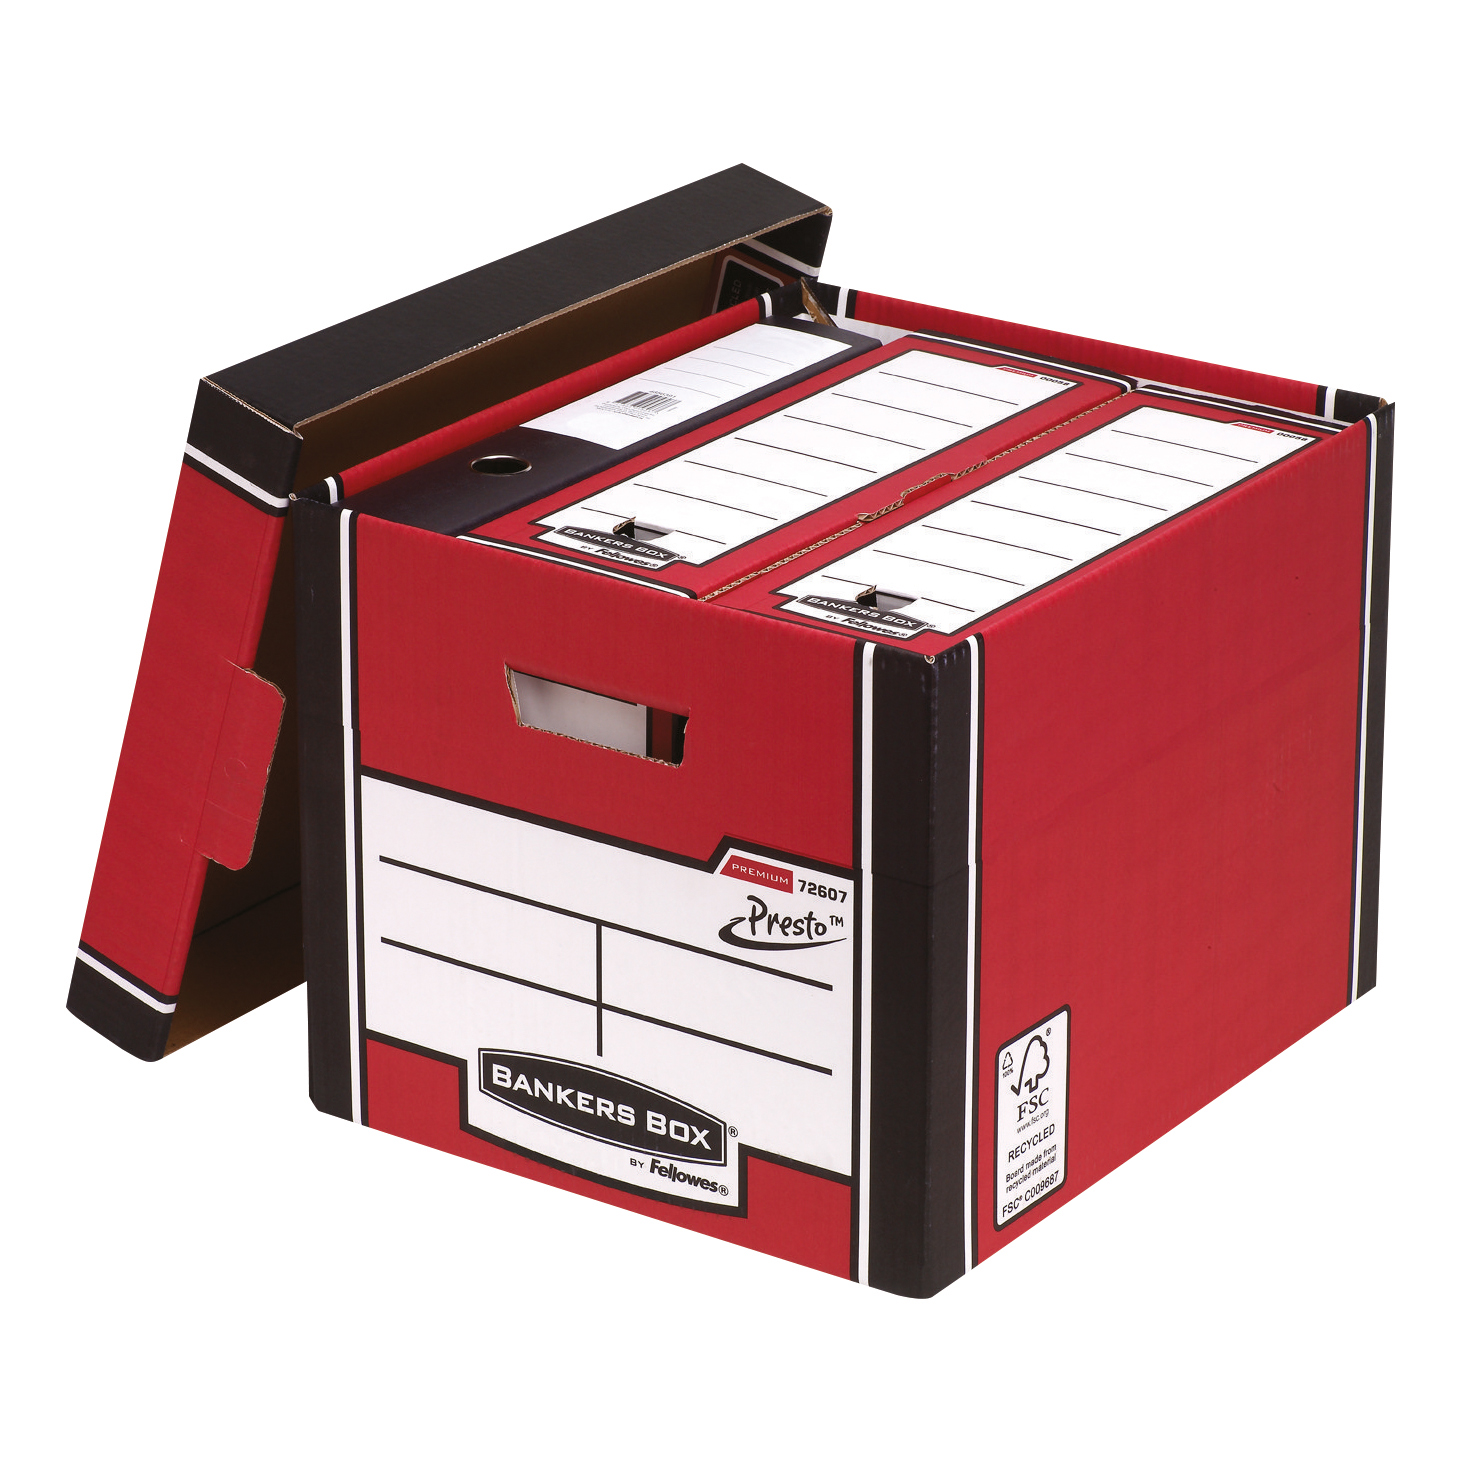 Bankers Box Premium Storage Box (Presto) Tall Red FSC Ref 7260701 Pack 10